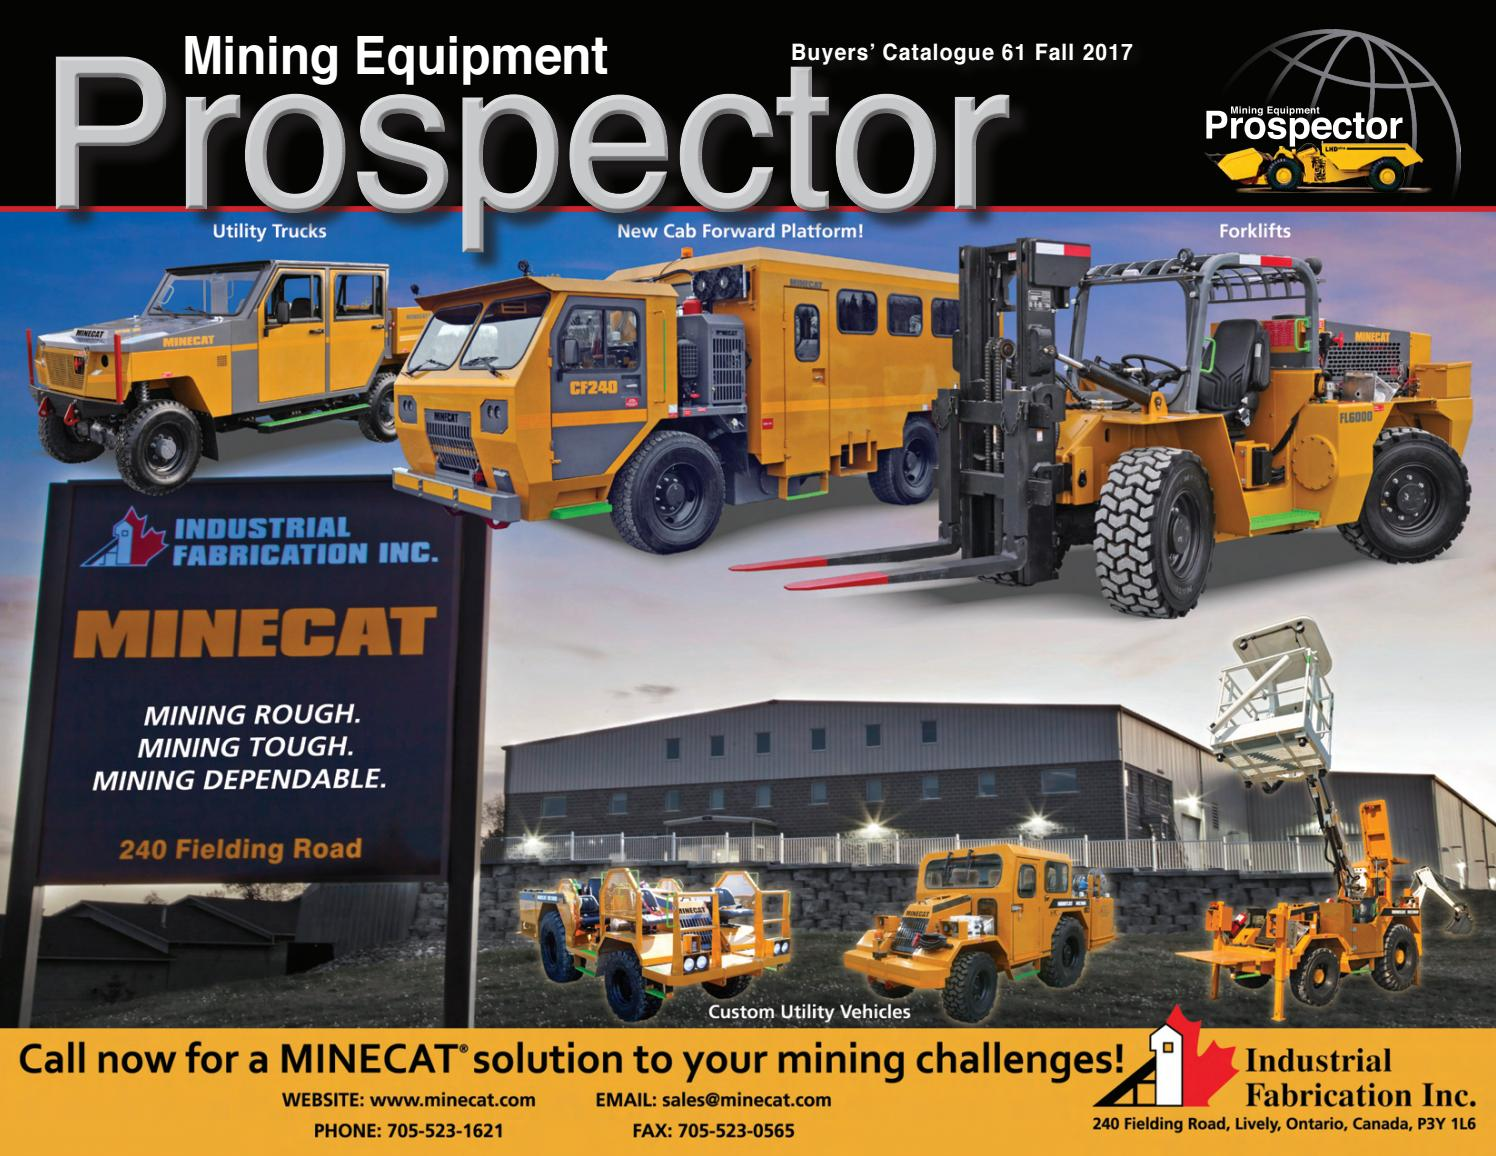 Mining Equipment Buyer's Catalogue v61 by The Mining Equipment